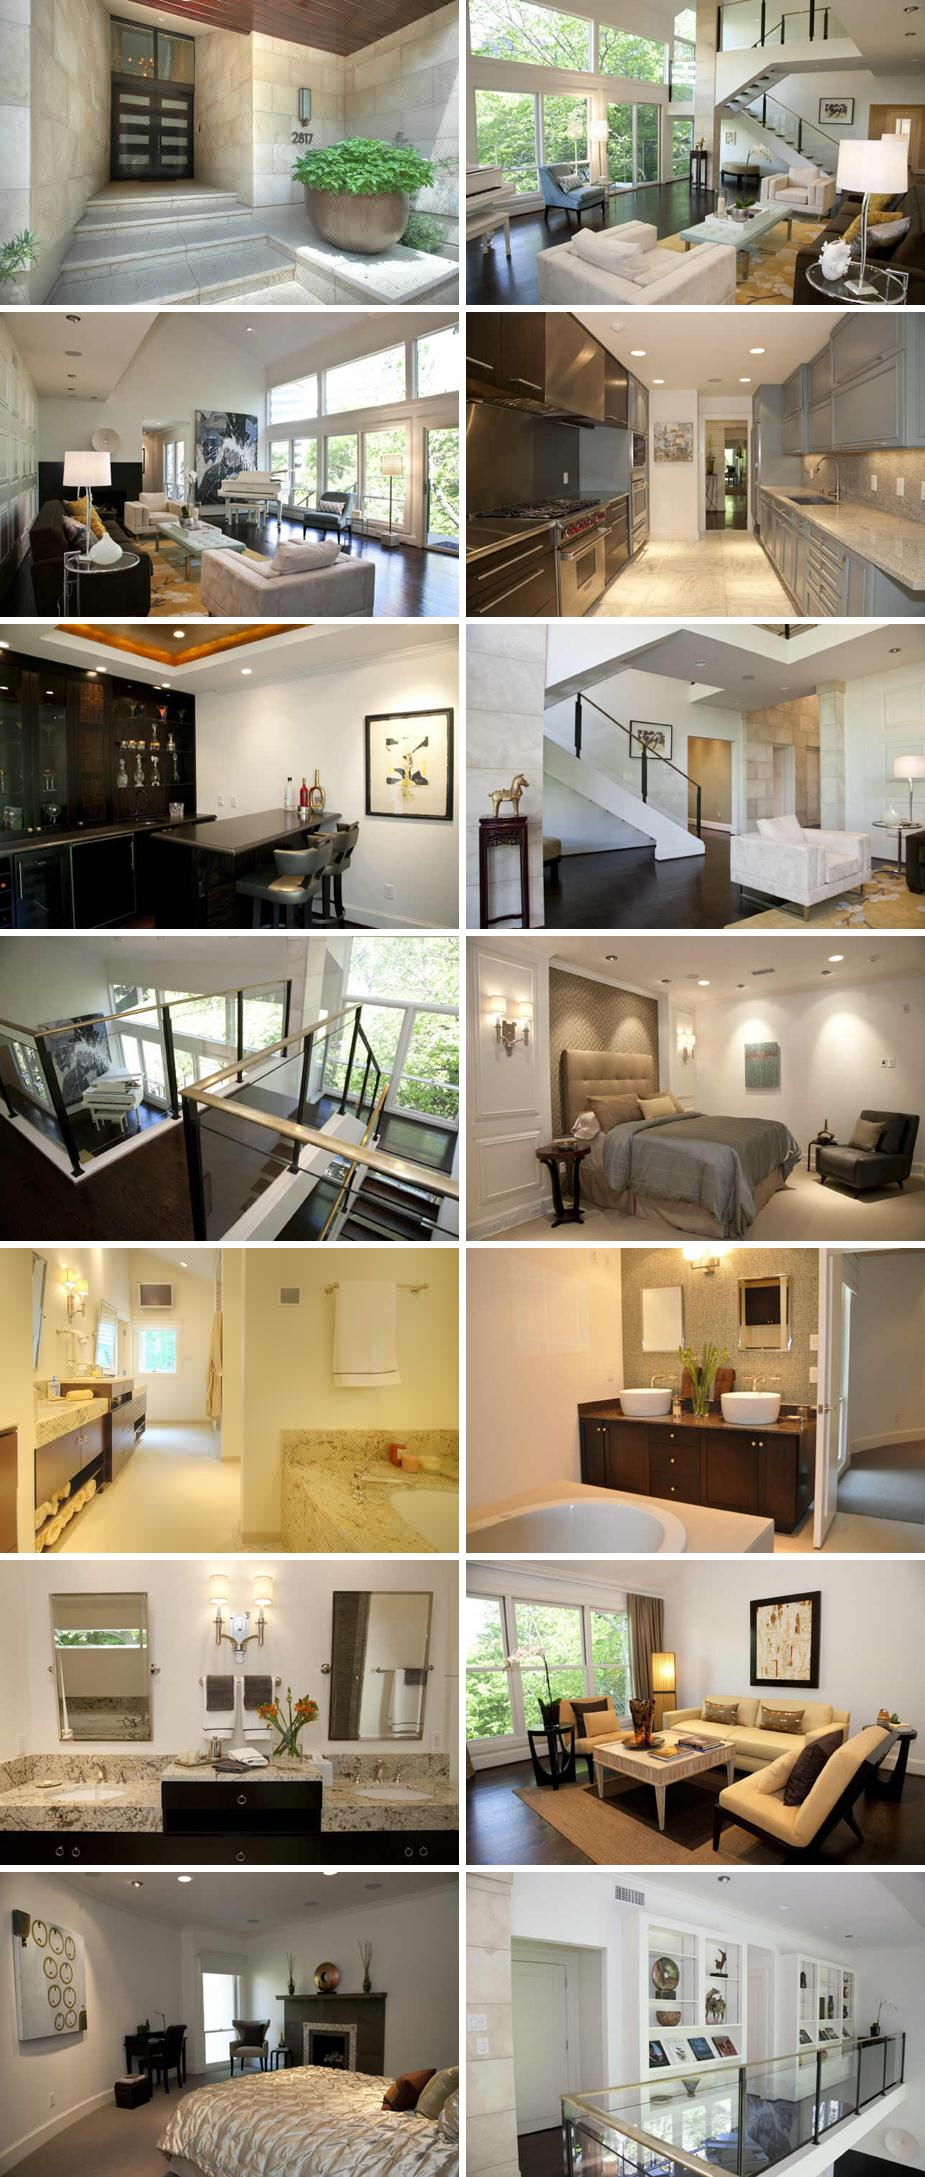 Terence newman s house profile home pictures rare terence newman